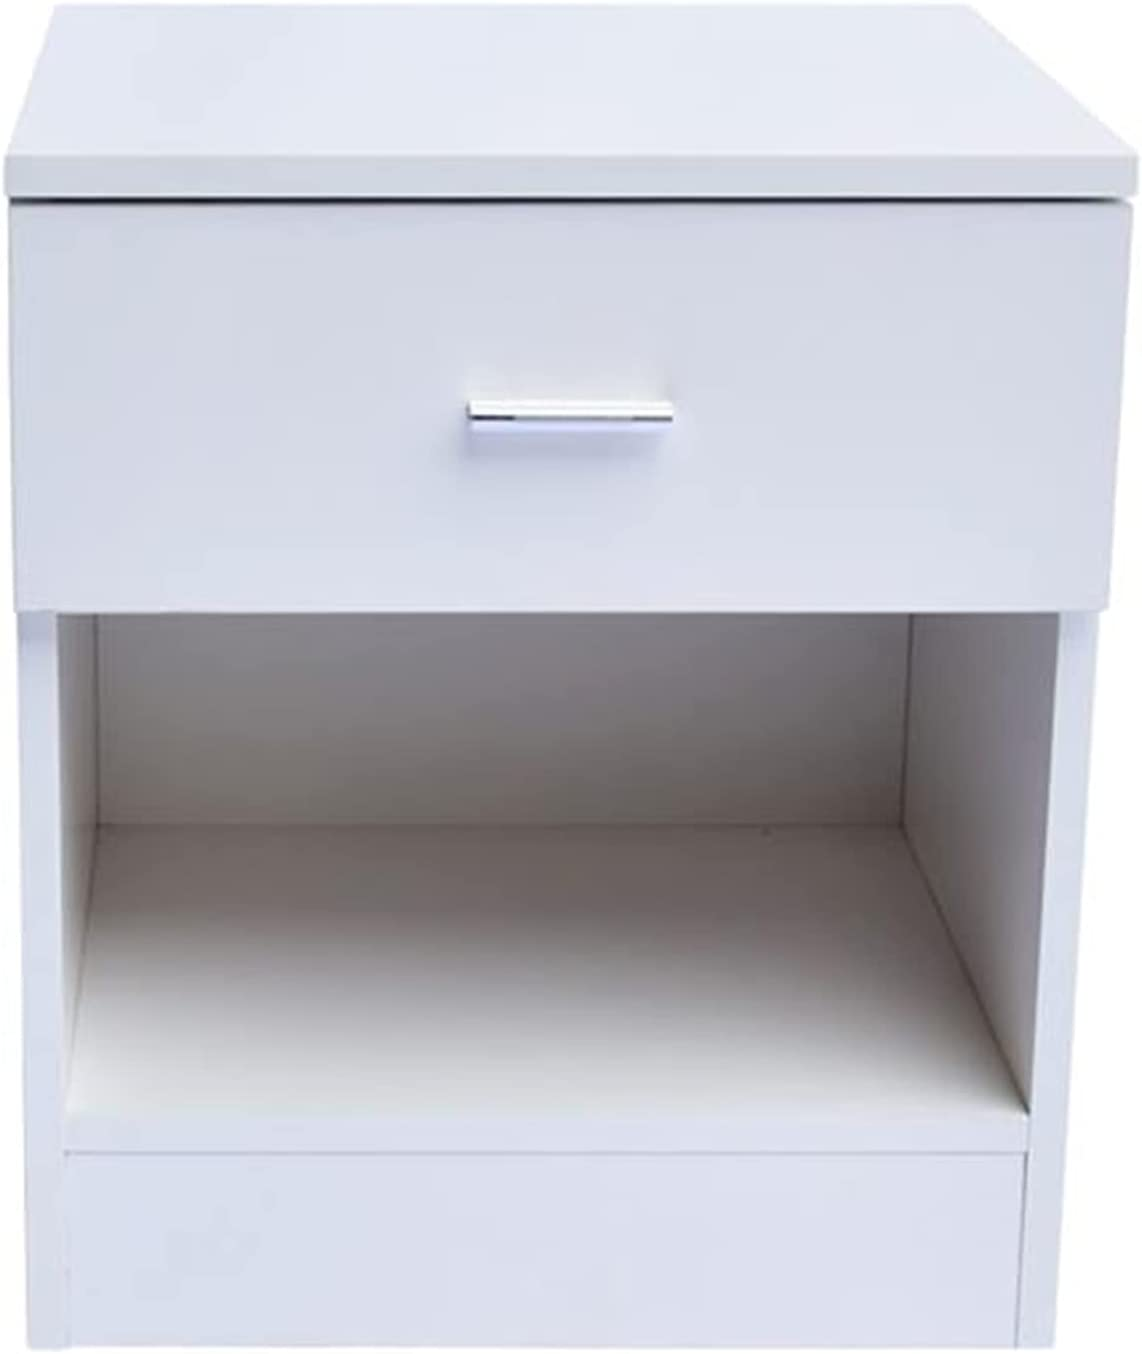 Qikafan Solid Wood Night Max 59% OFF Table Handle Cabinet Bedside 1-Dr Super special price Metal